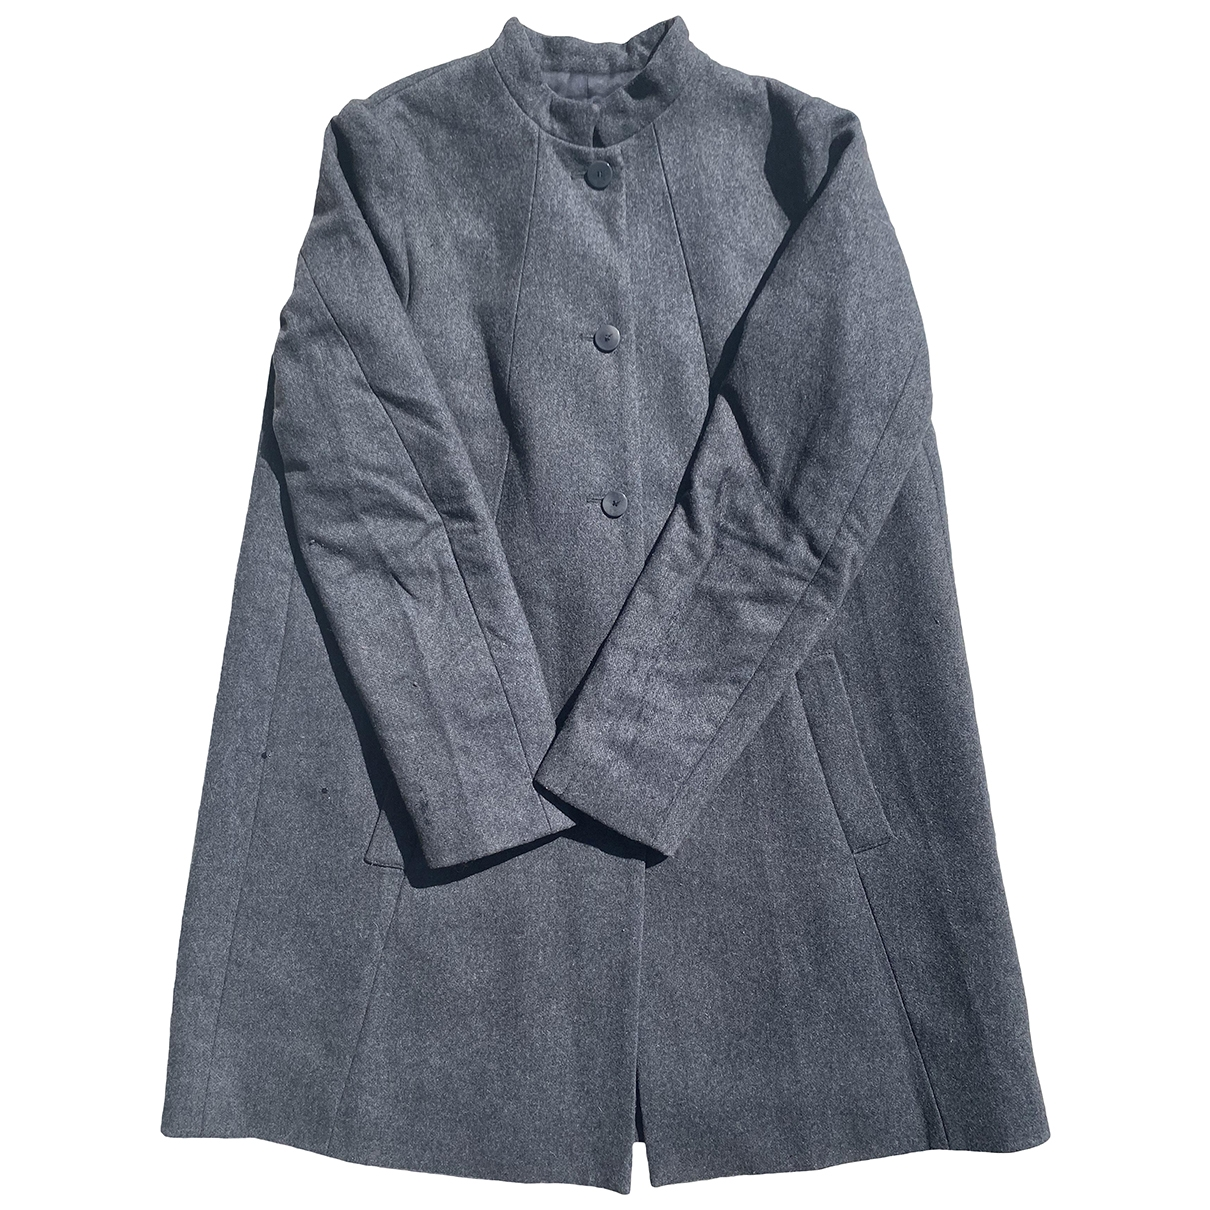 Bruuns Bazaar \N Grey Wool coat for Women 38 FR